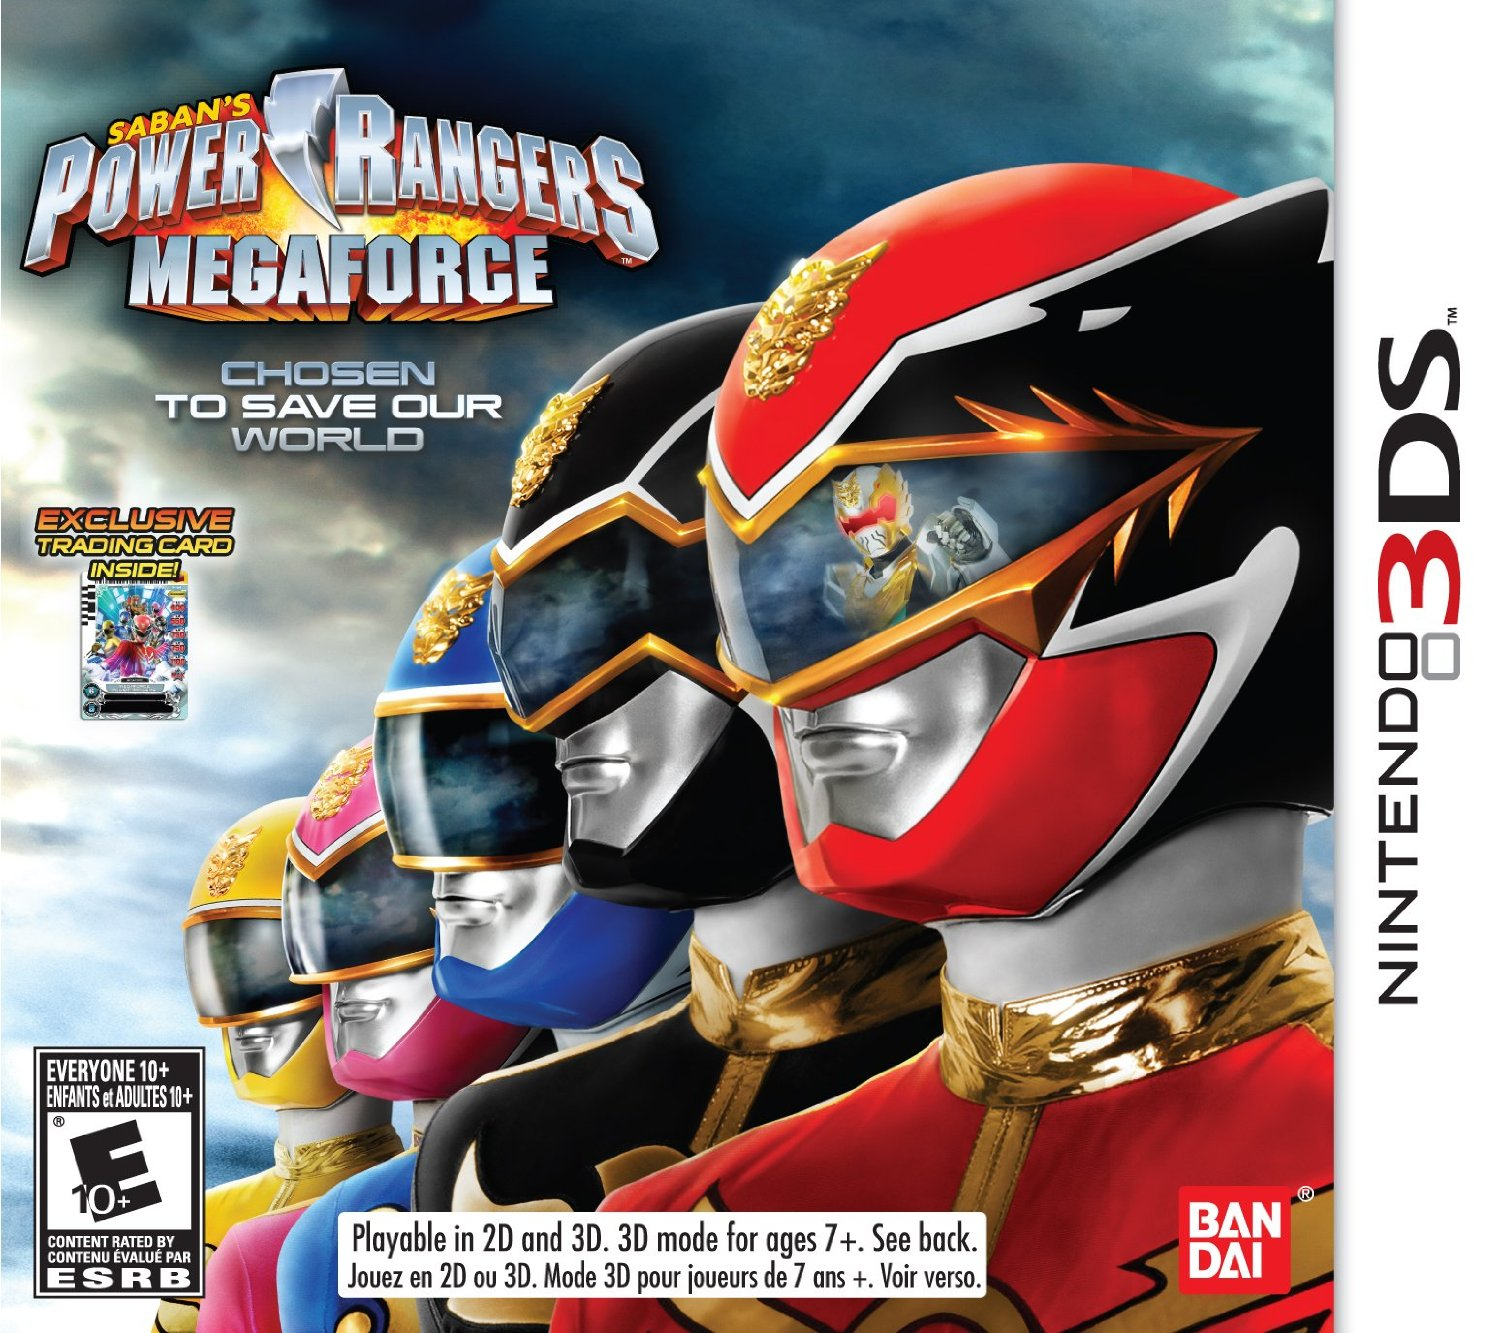 Play as the original mighty morphin power rangers in power rangers megaforce 3ds game nerd reactor - Moto power rangers megaforce ...